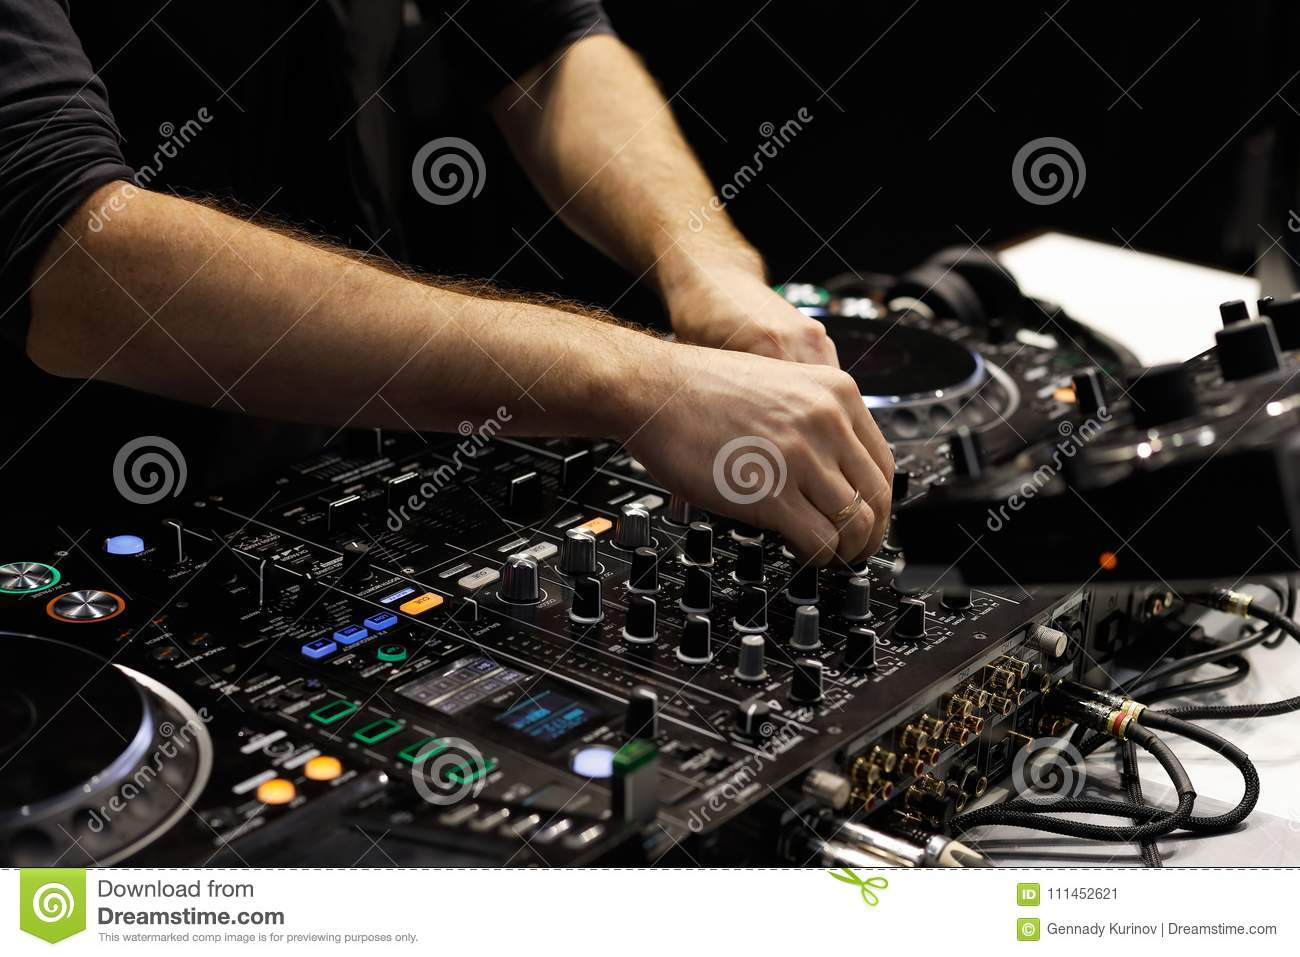 dj hands mixing tracks on sound mixer controller stock image image